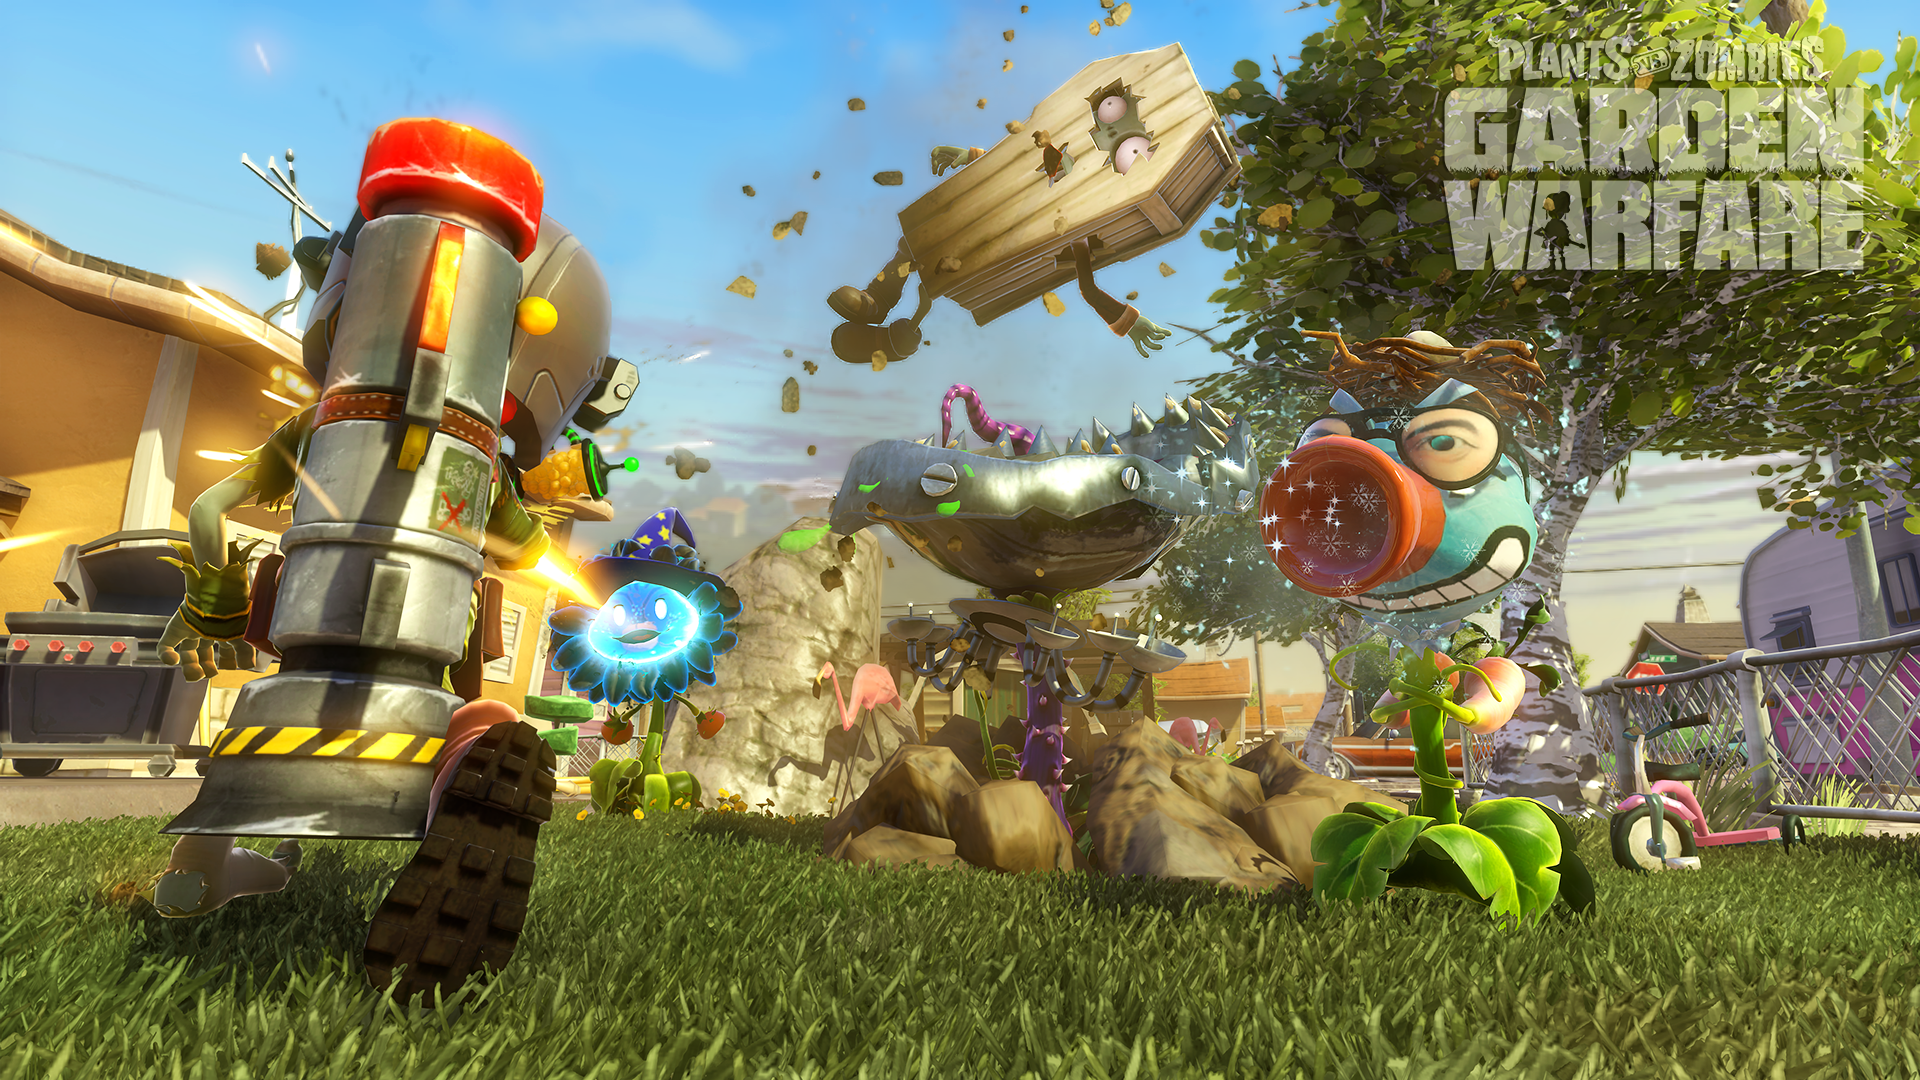 Plants Vs Zombies Garden Warfare Wallpaper Hd 49038 1920x1080 Px